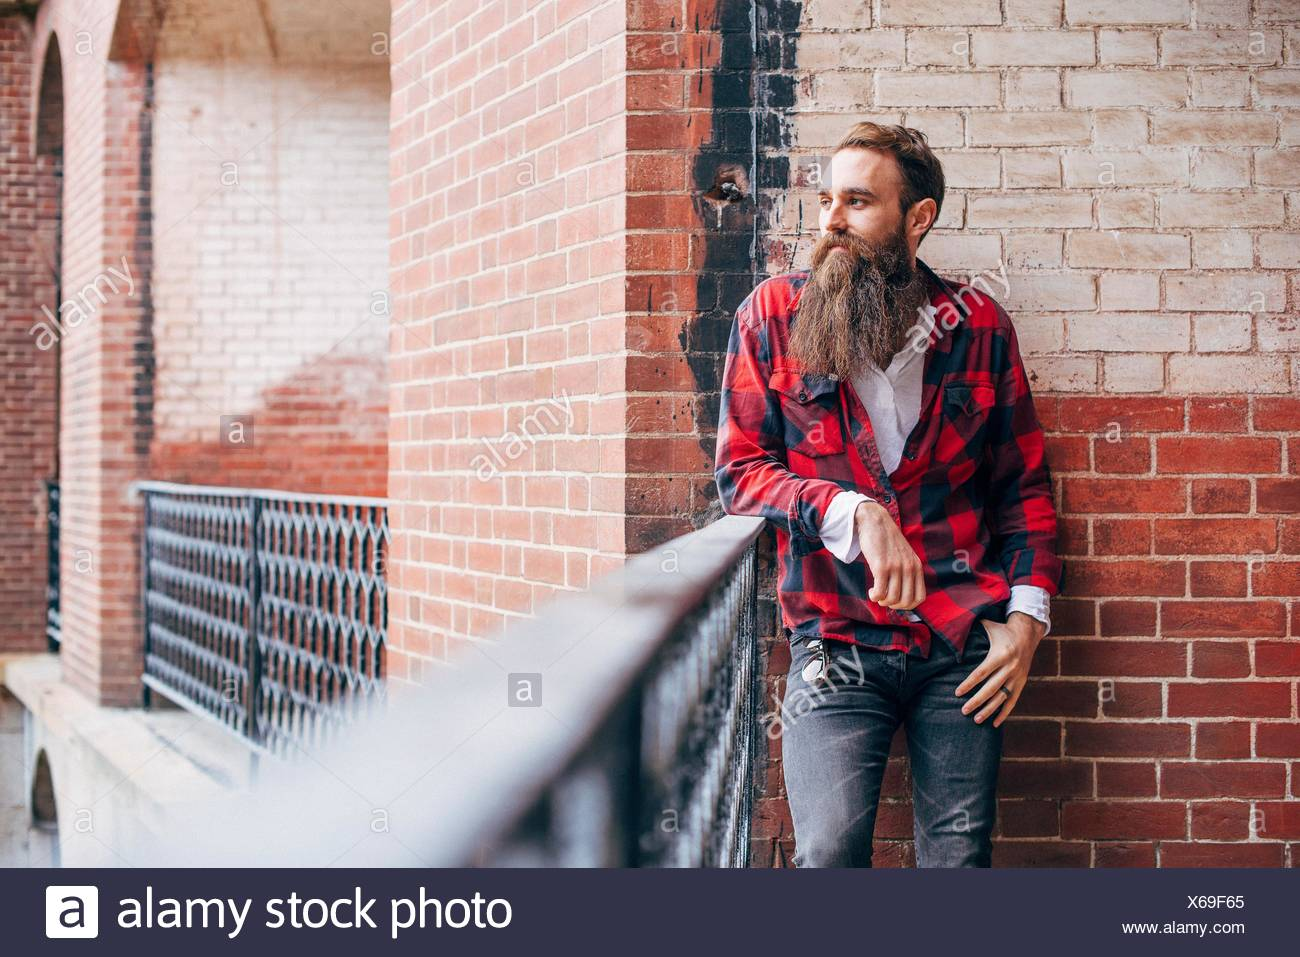 Man with beard leaning on balcony looking away - Stock Image